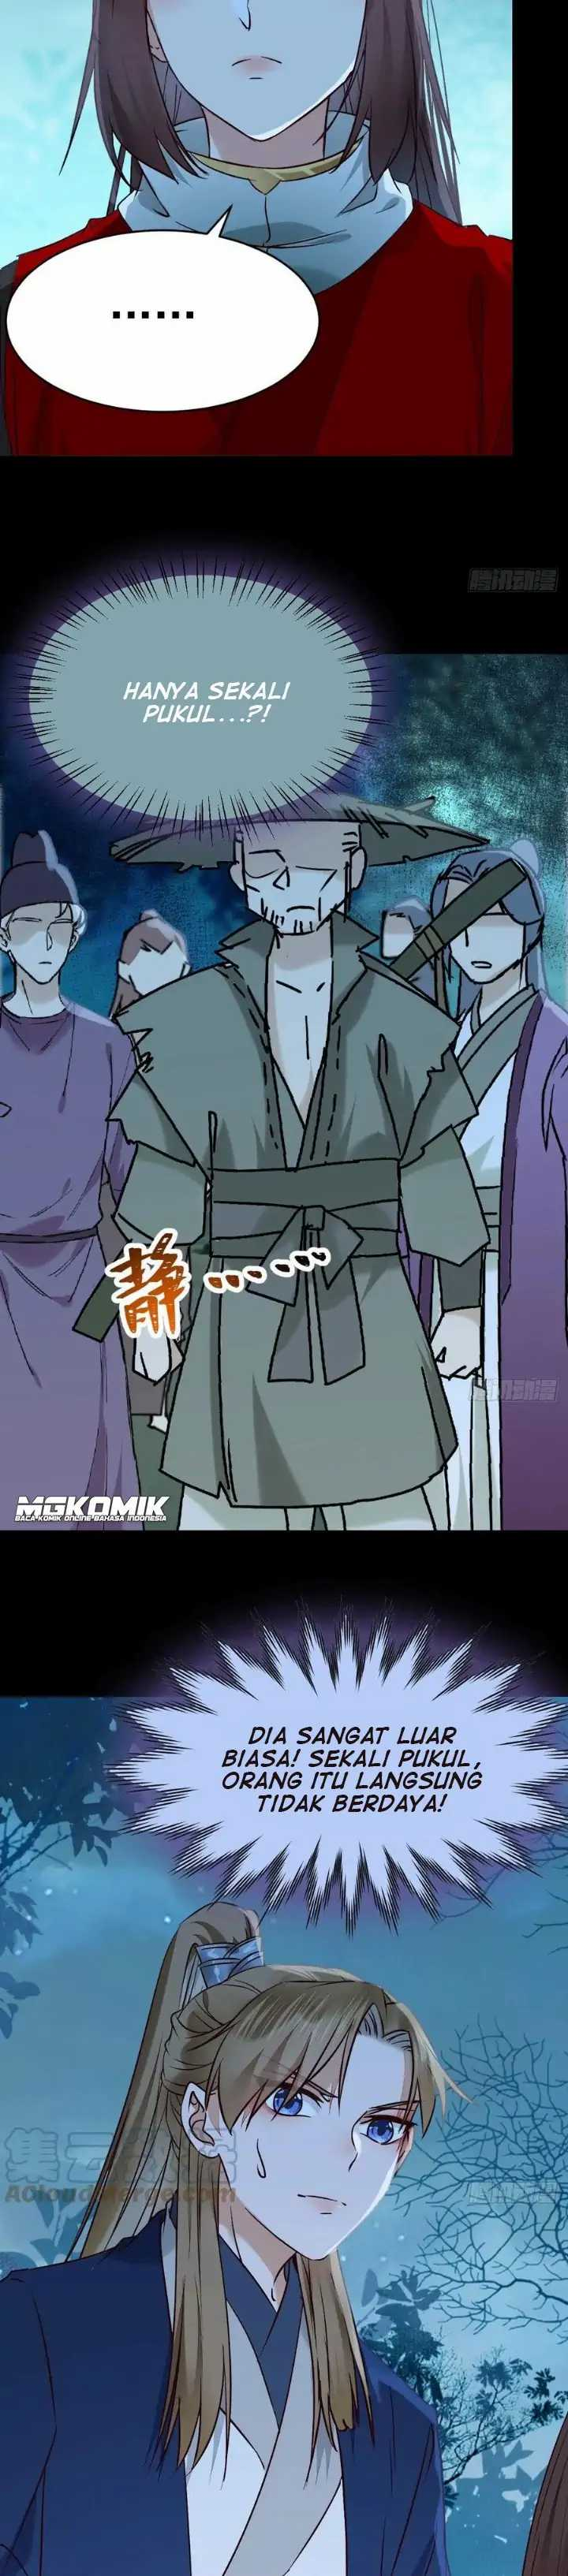 The Ghostly Doctor Chapter 398